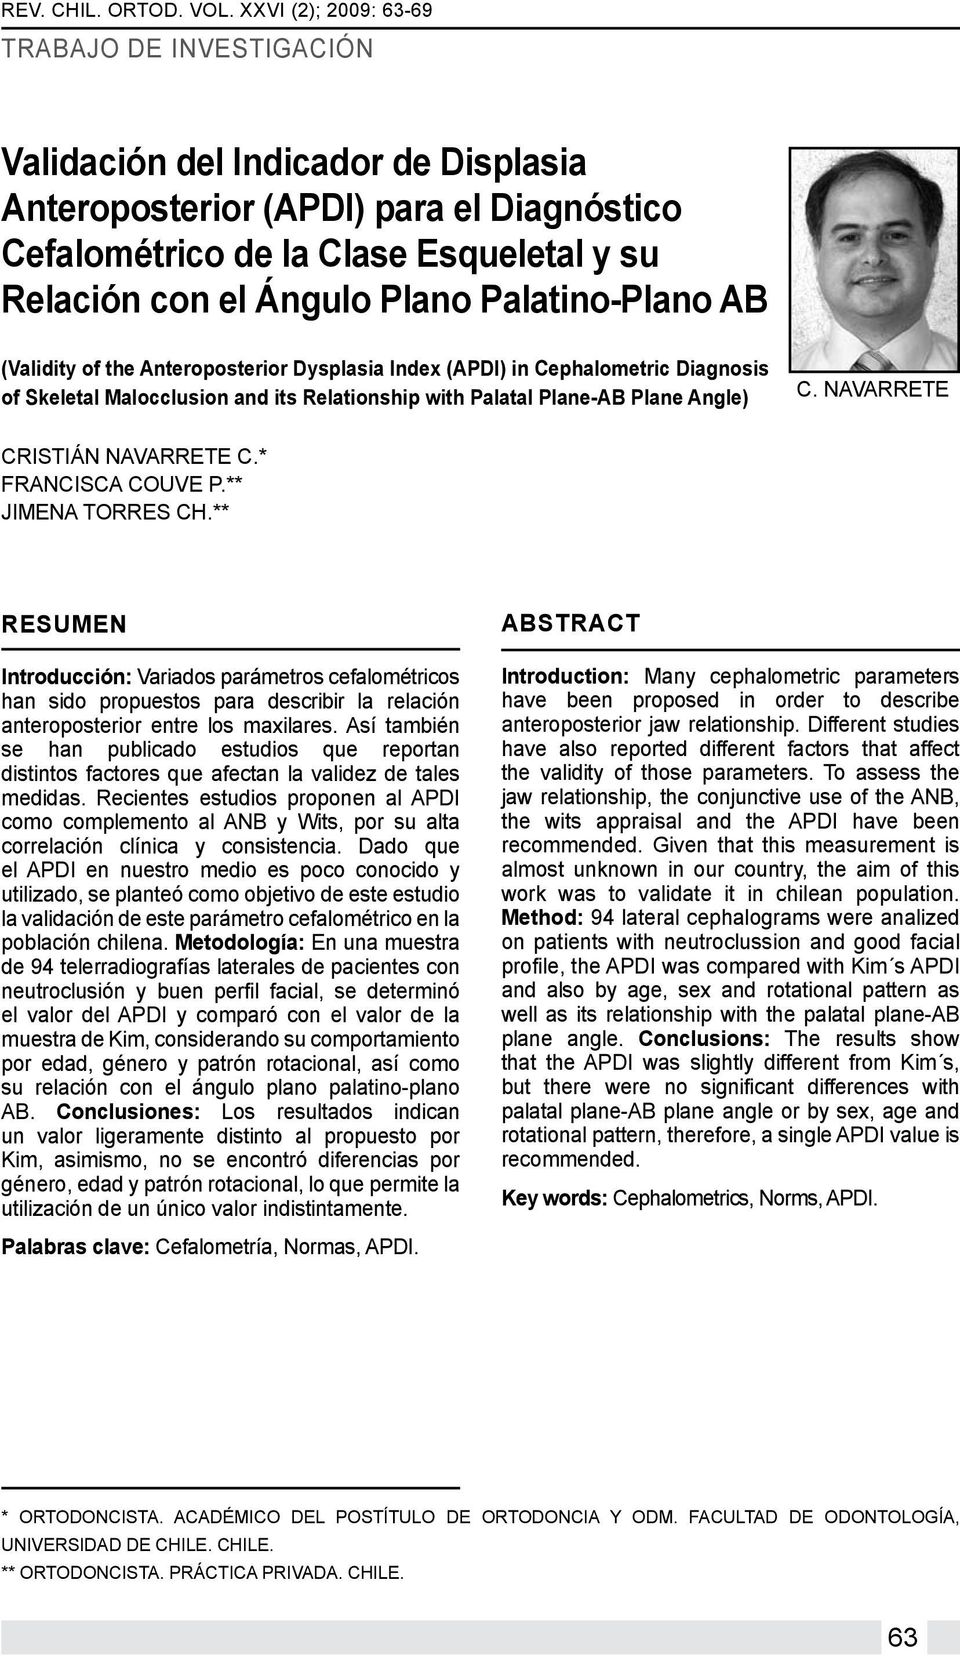 Palatino-Plano AB (Validity of the Anteroposterior Dysplasia Index (APDI) in Cephalometric Diagnosis of Skeletal Malocclusion and its Relationship with Palatal Plane-AB Plane Angle) C.